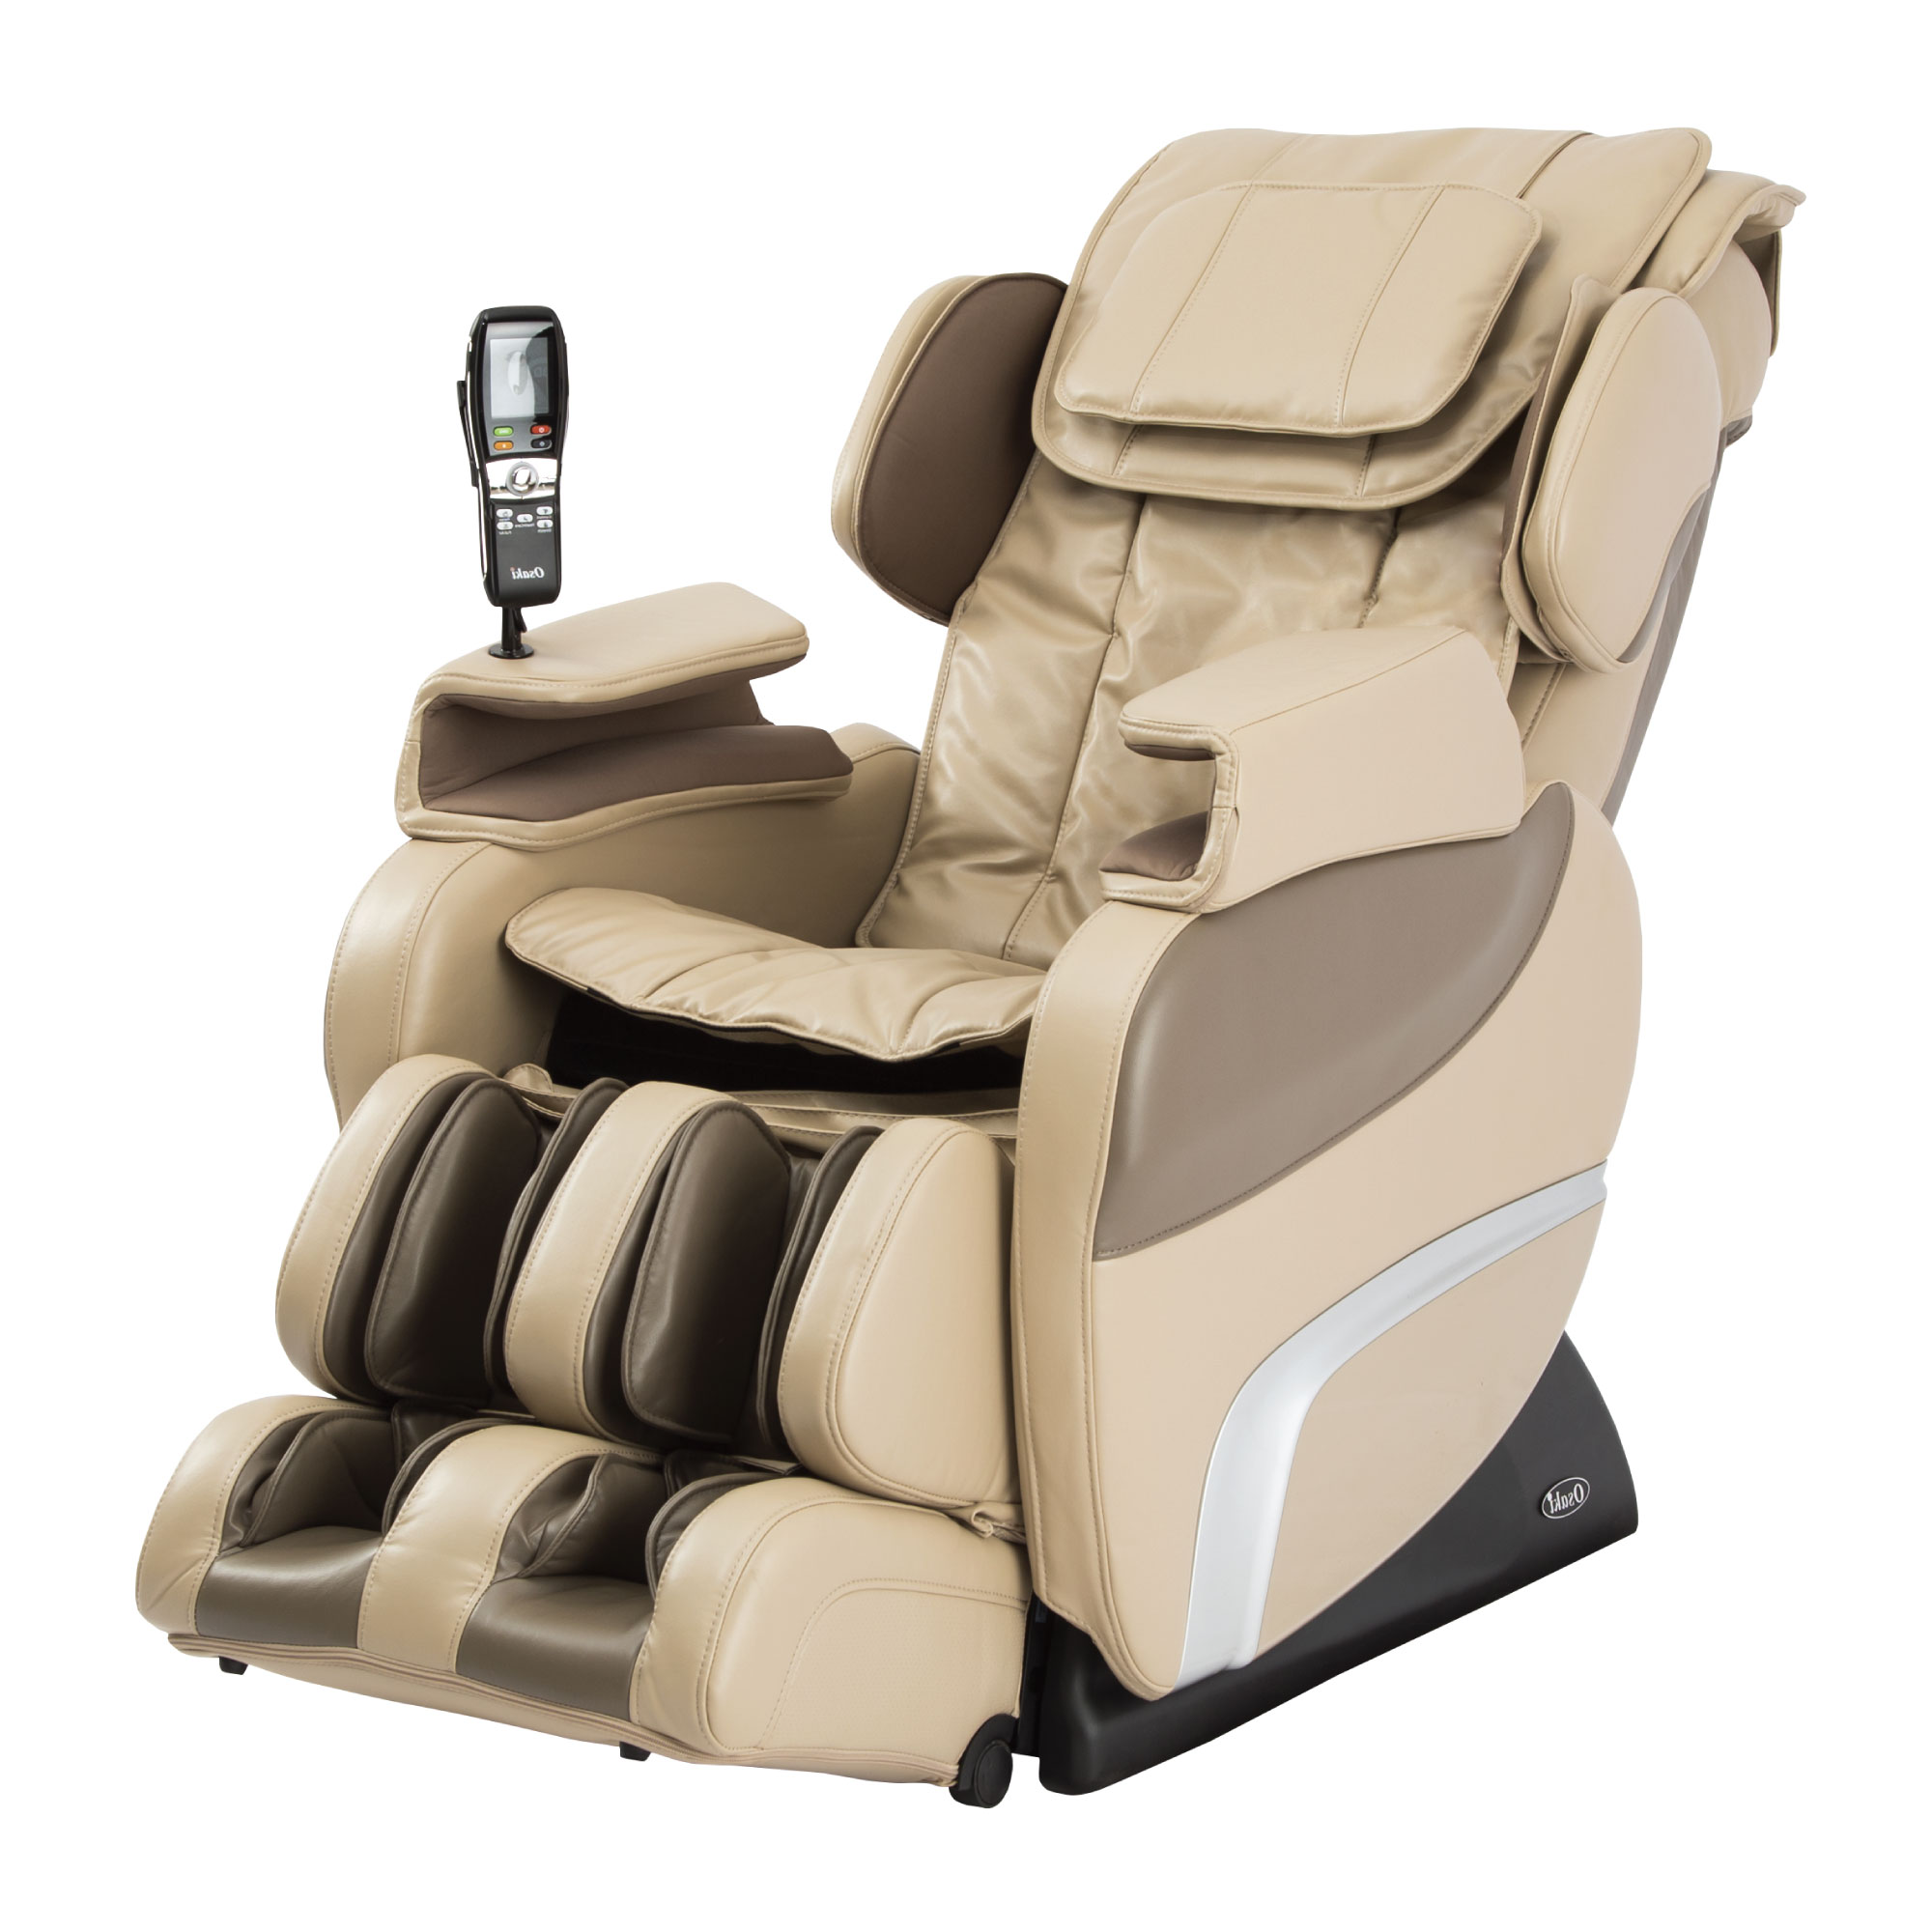 used vending massage chairs for sale the chronicles of narnia silver chair trailer 2016 titan t1 7700r